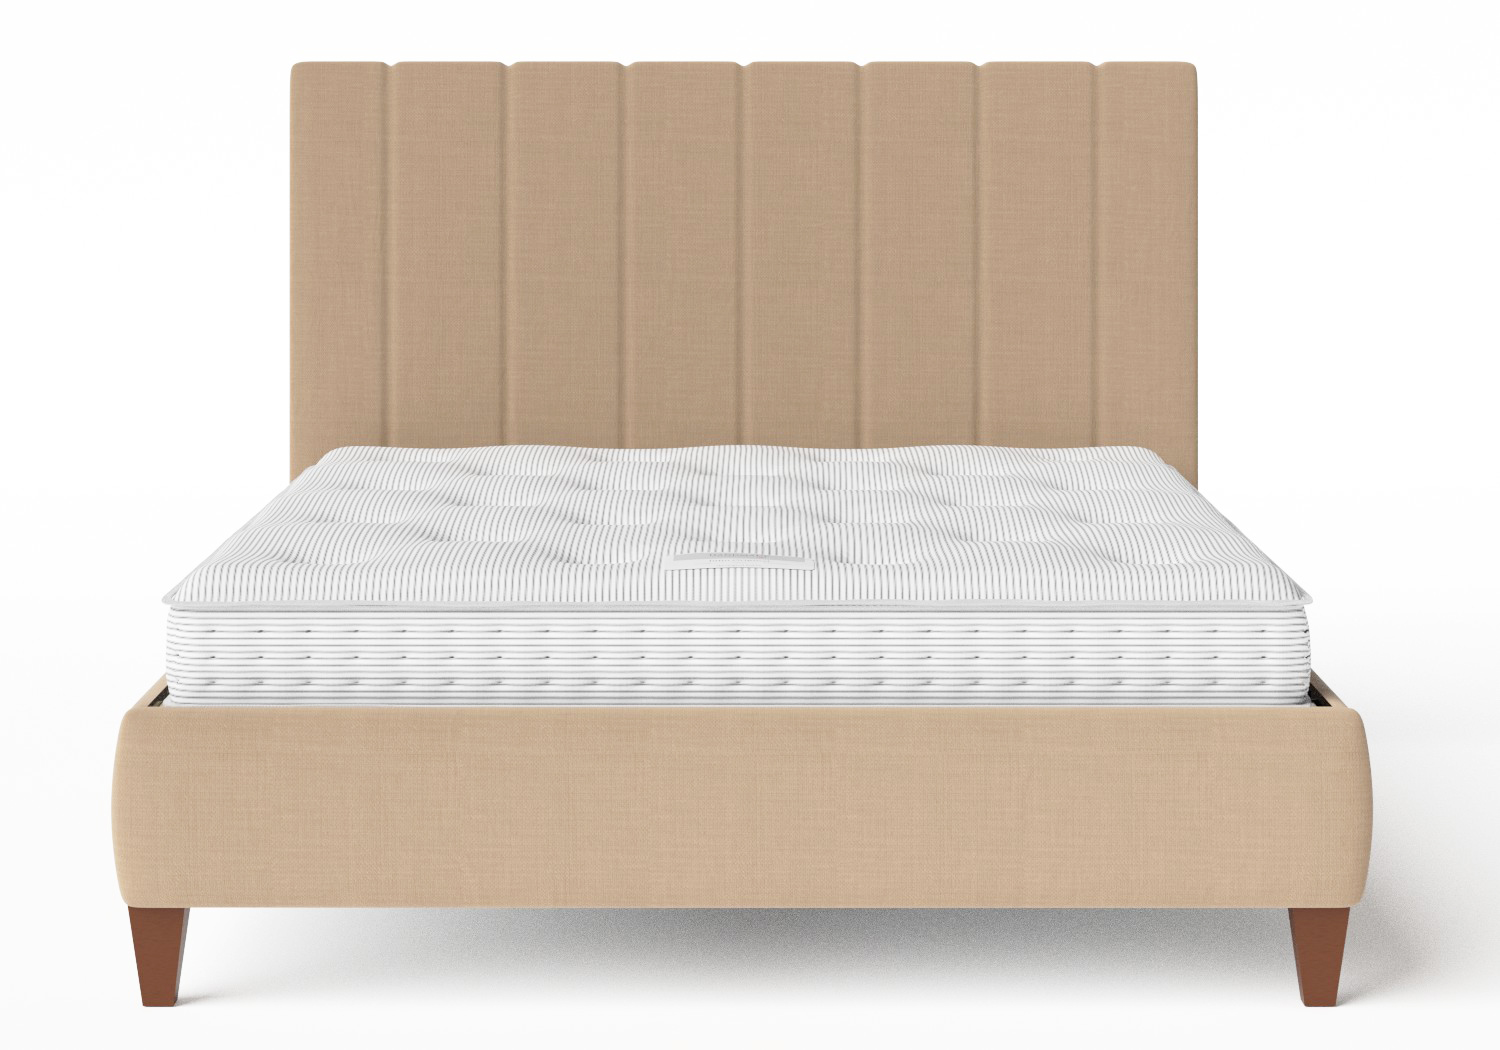 Yushan Upholstered Bed in Straw fabric shown with Juno 1 mattress